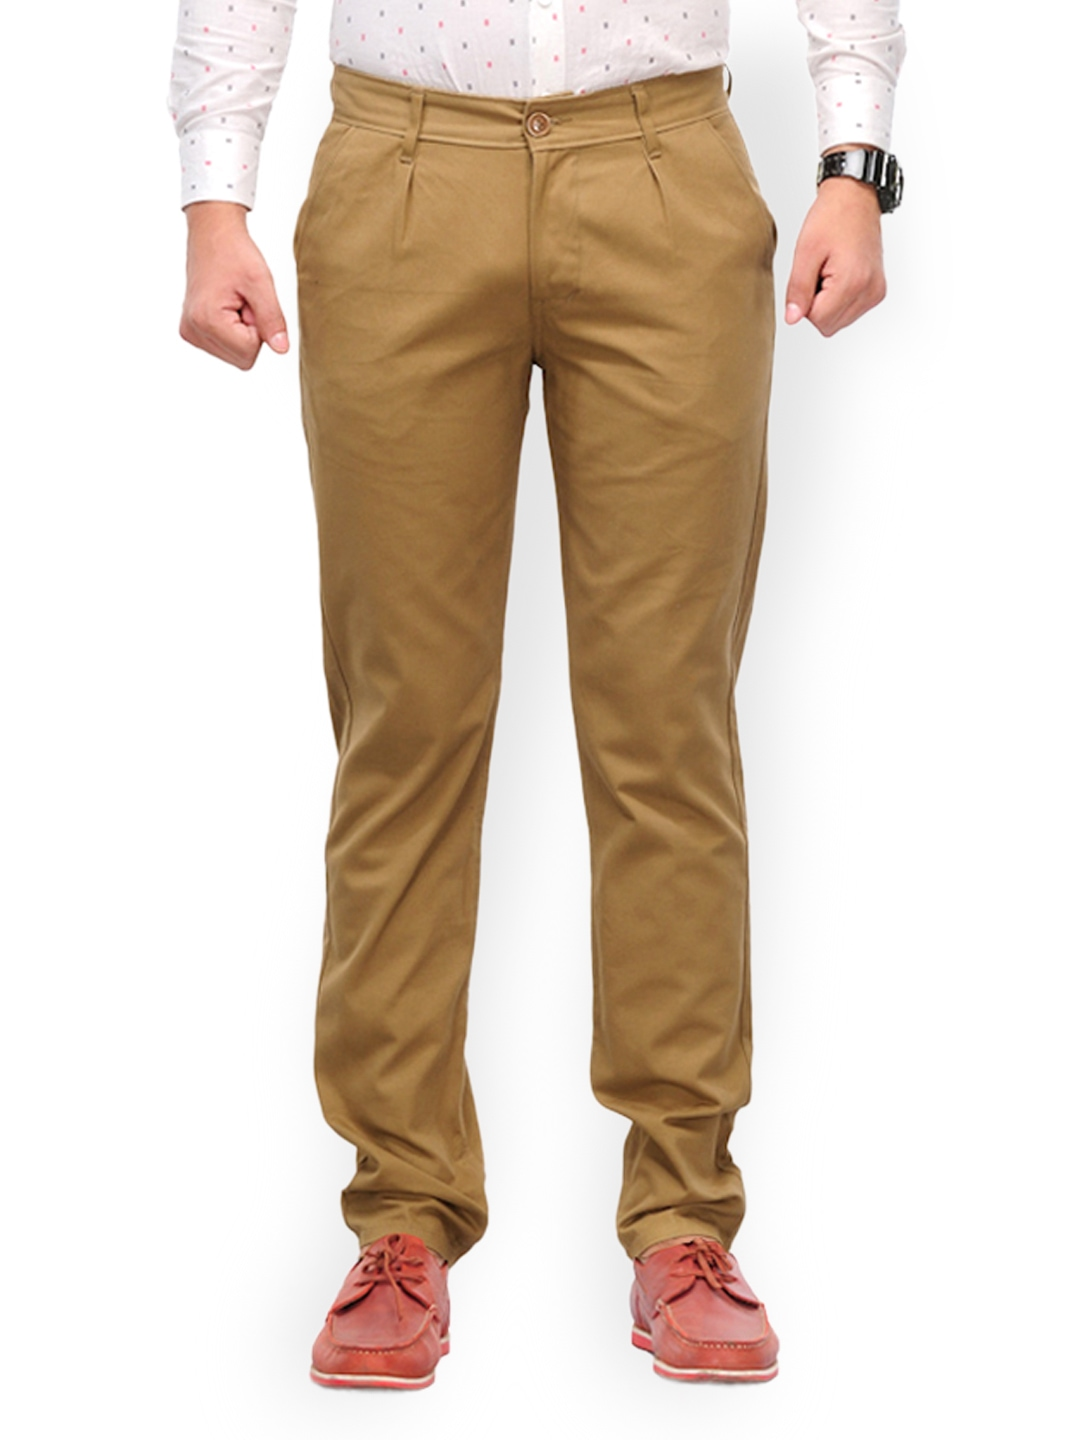 Myntra haute couture men coral red slim fit chino trousers for Haute couture men